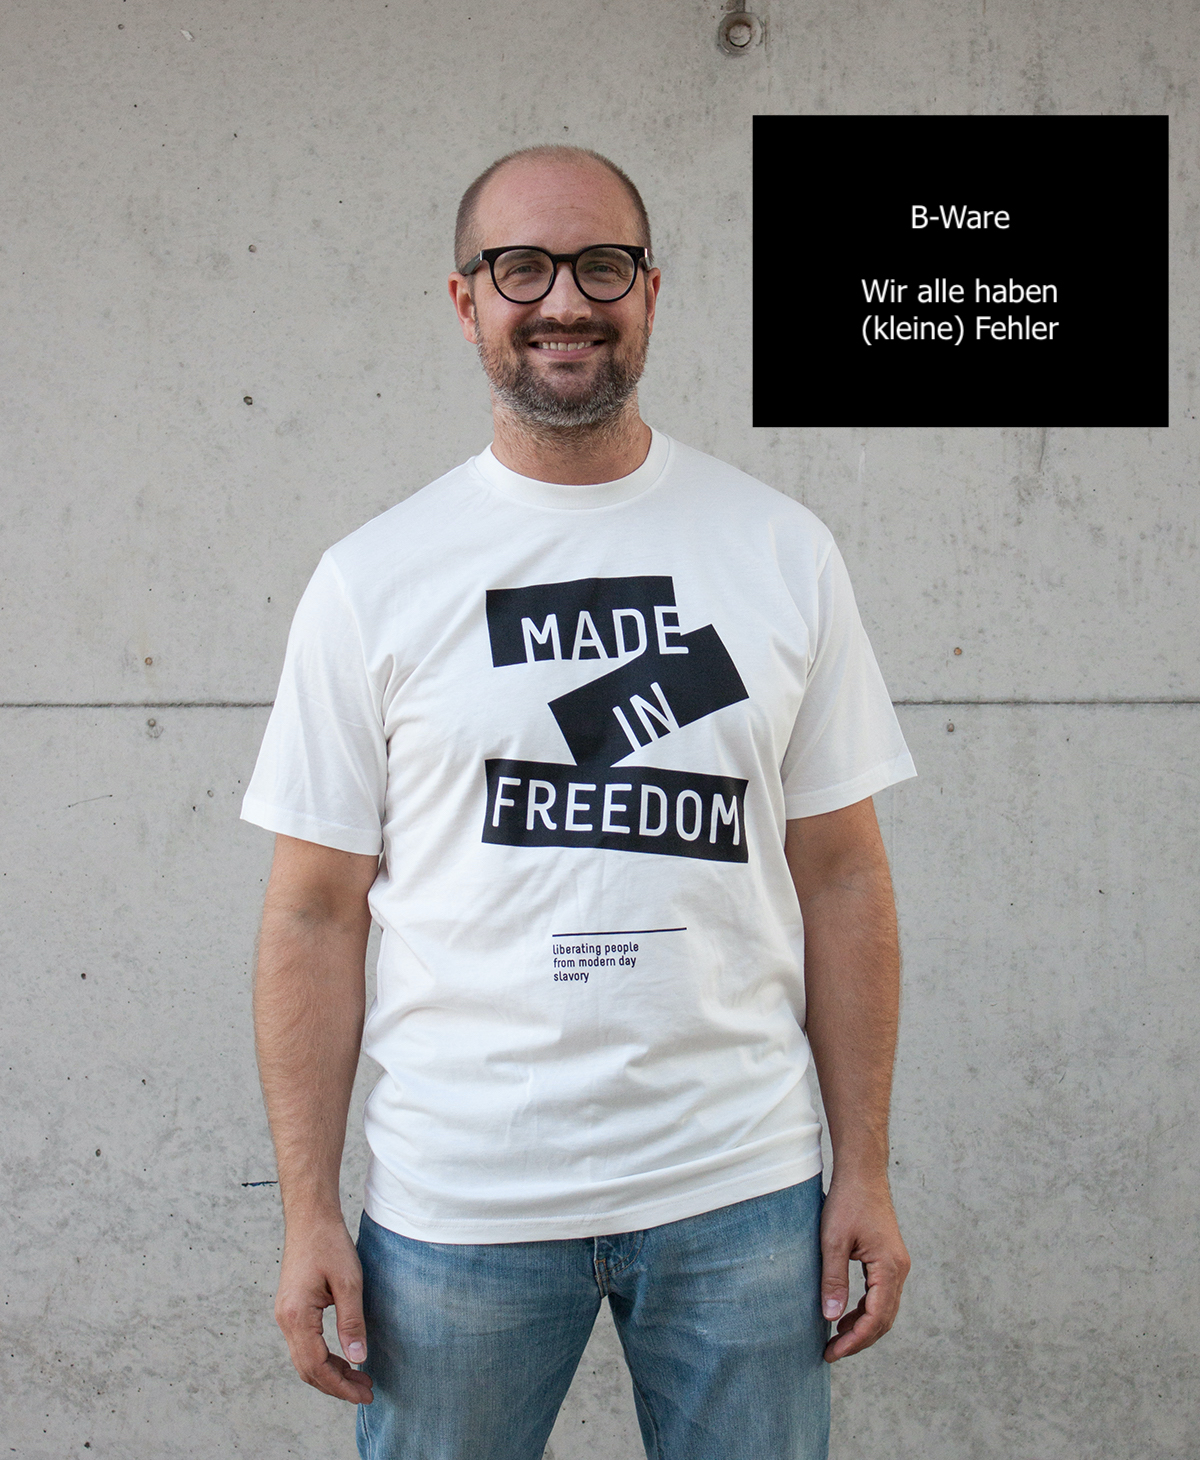 B-Ware made in freedom Print T-Shirt